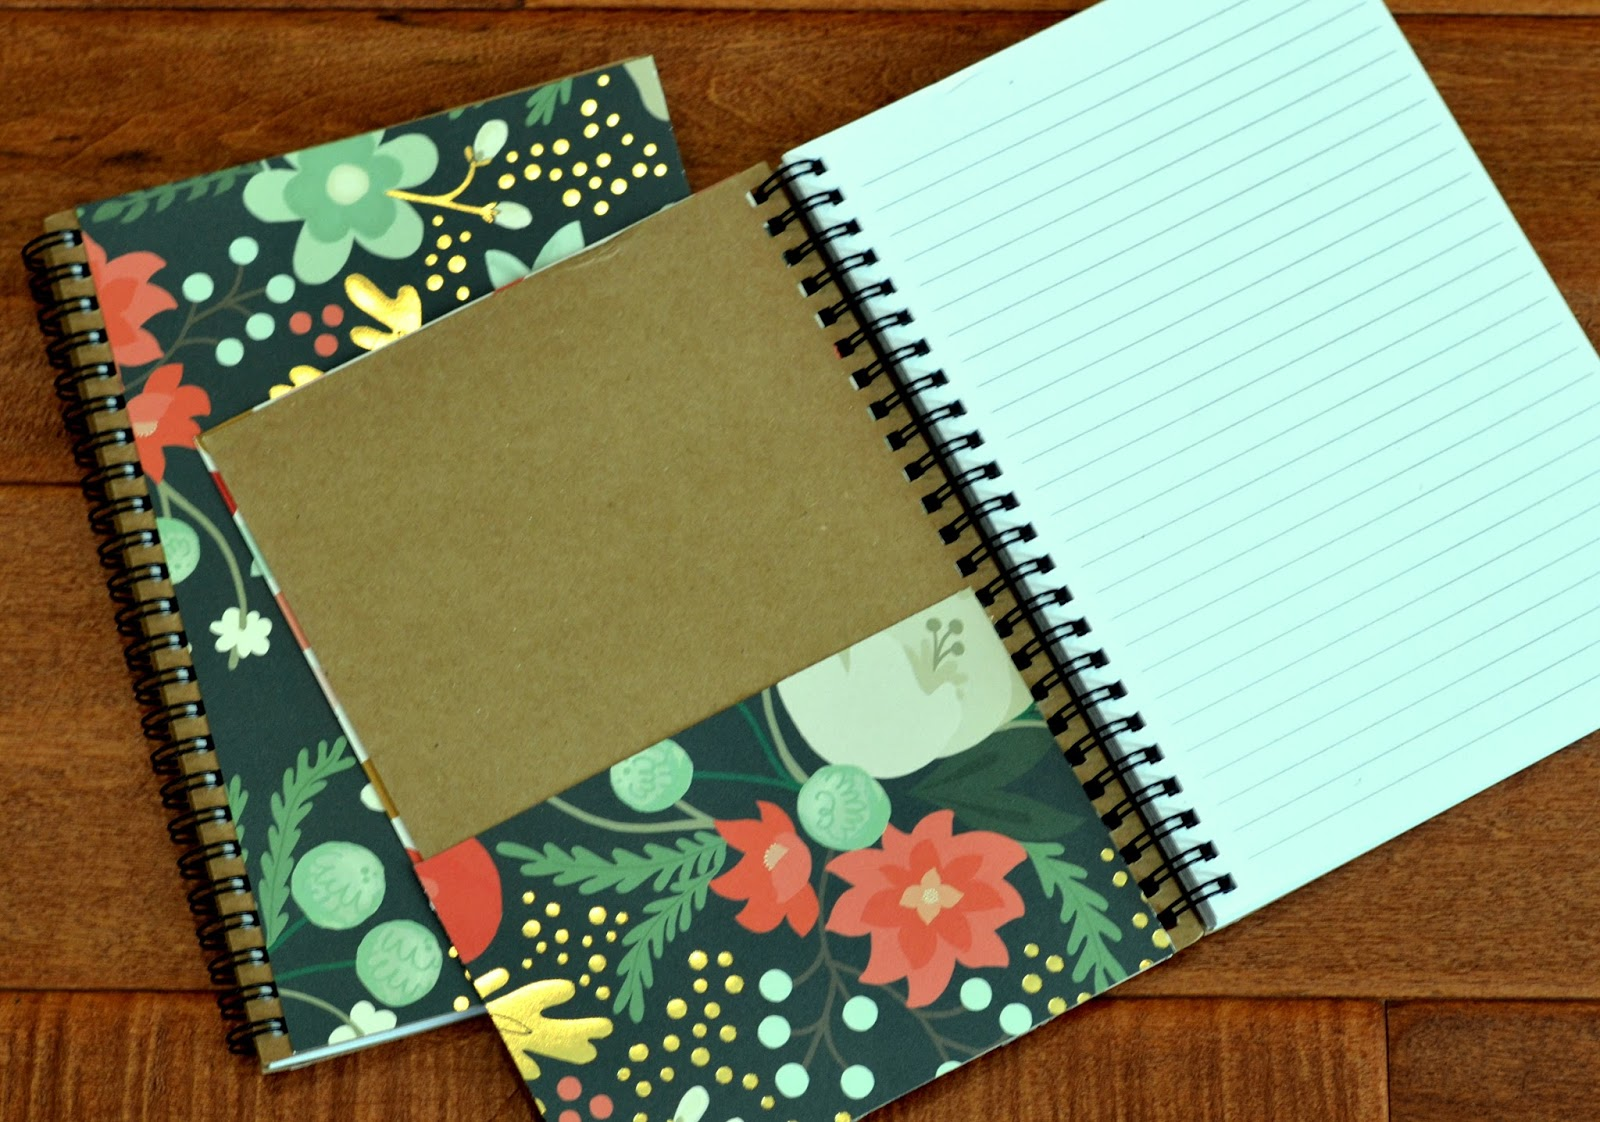 How to make scrapbook journal - That S It Now You Have Some Fancy Notebooks Just Waiting To Be Filled With All Of Your Thoughts These Make Great Teacher Gifts For The Holidays Or Teacher